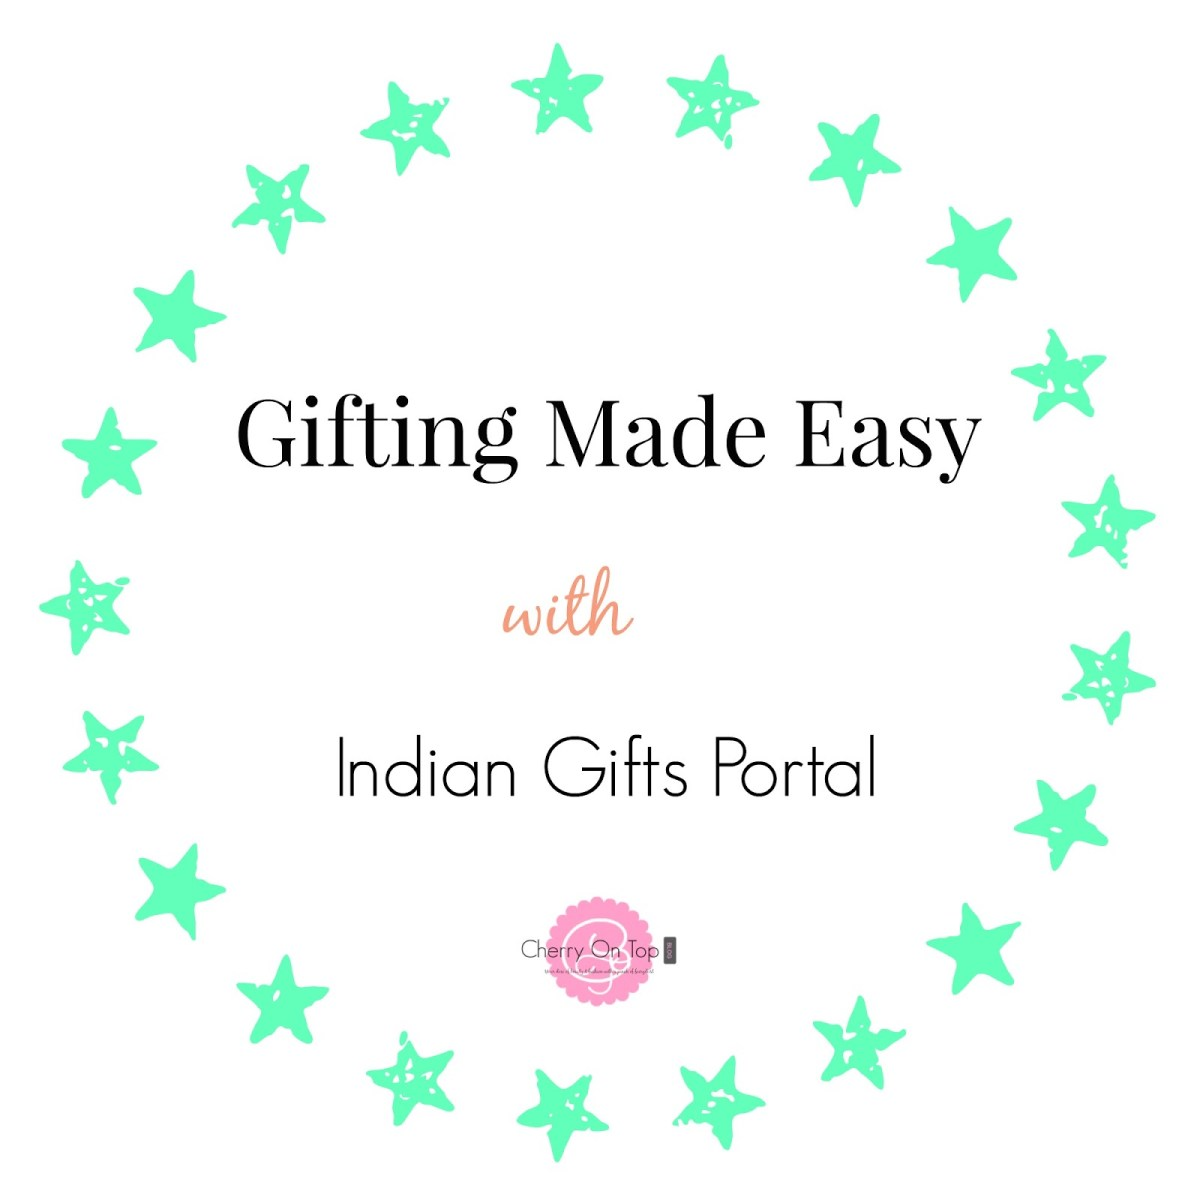 Gifting Made Easy with Indian Gifts Portal| Review